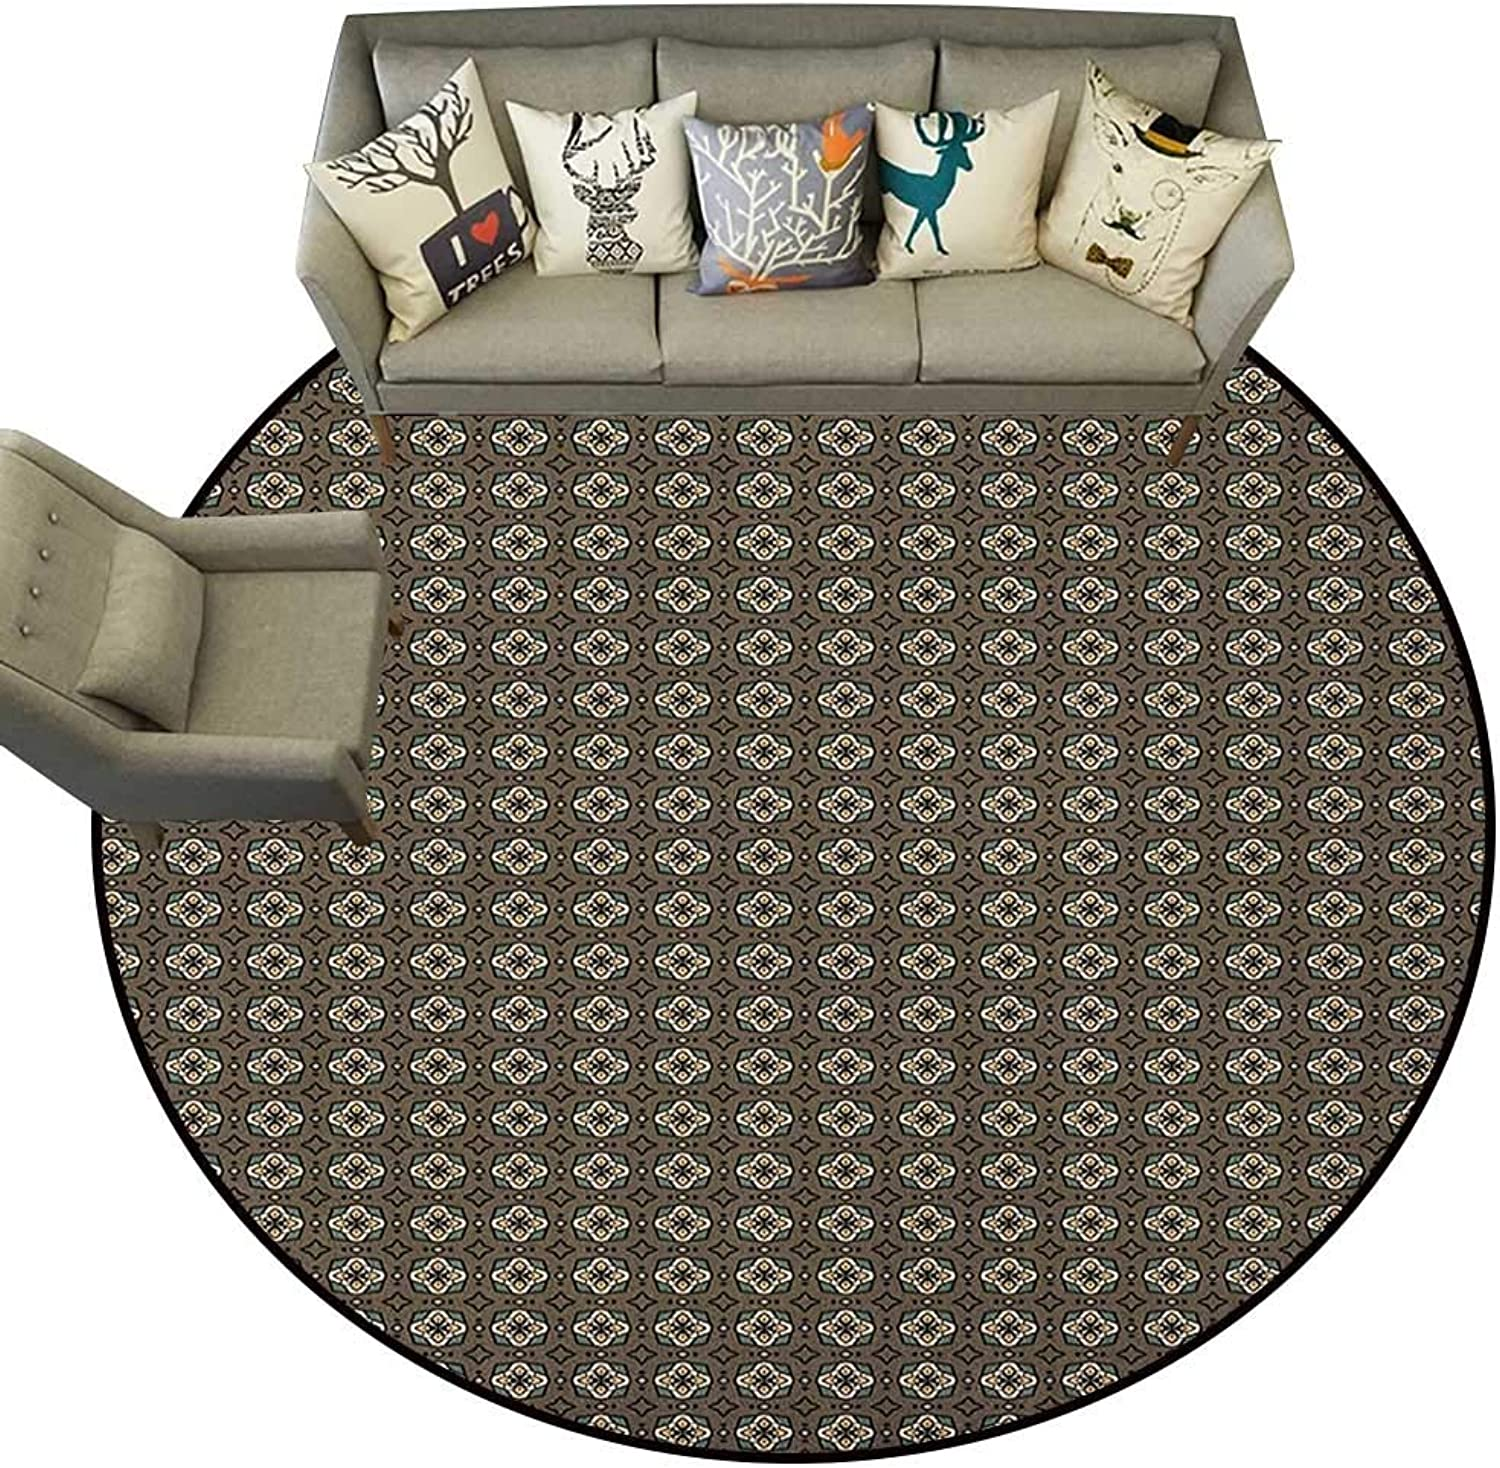 Geometric,Personalized Floor mats Stars and Squares Pattern Abstract Shapes Illustration Polka Dotted Background D48 Floor Mat Entrance Doormat